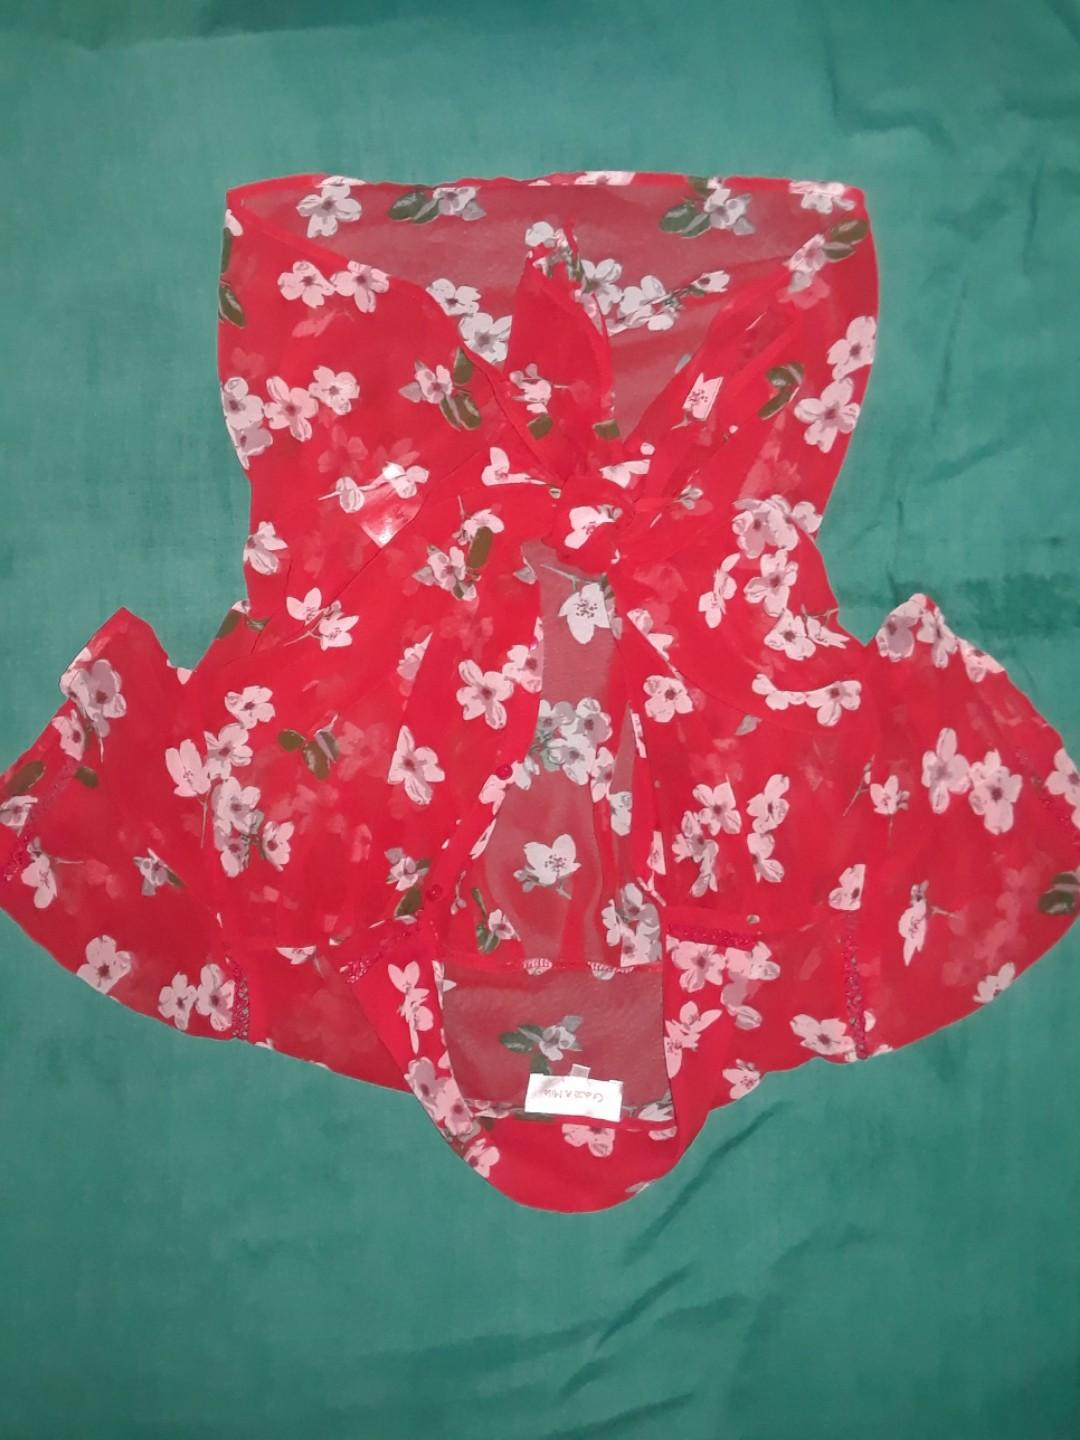 Red one size (or medium) front tie /button up floral Hawaiian print T shirt cute sheer